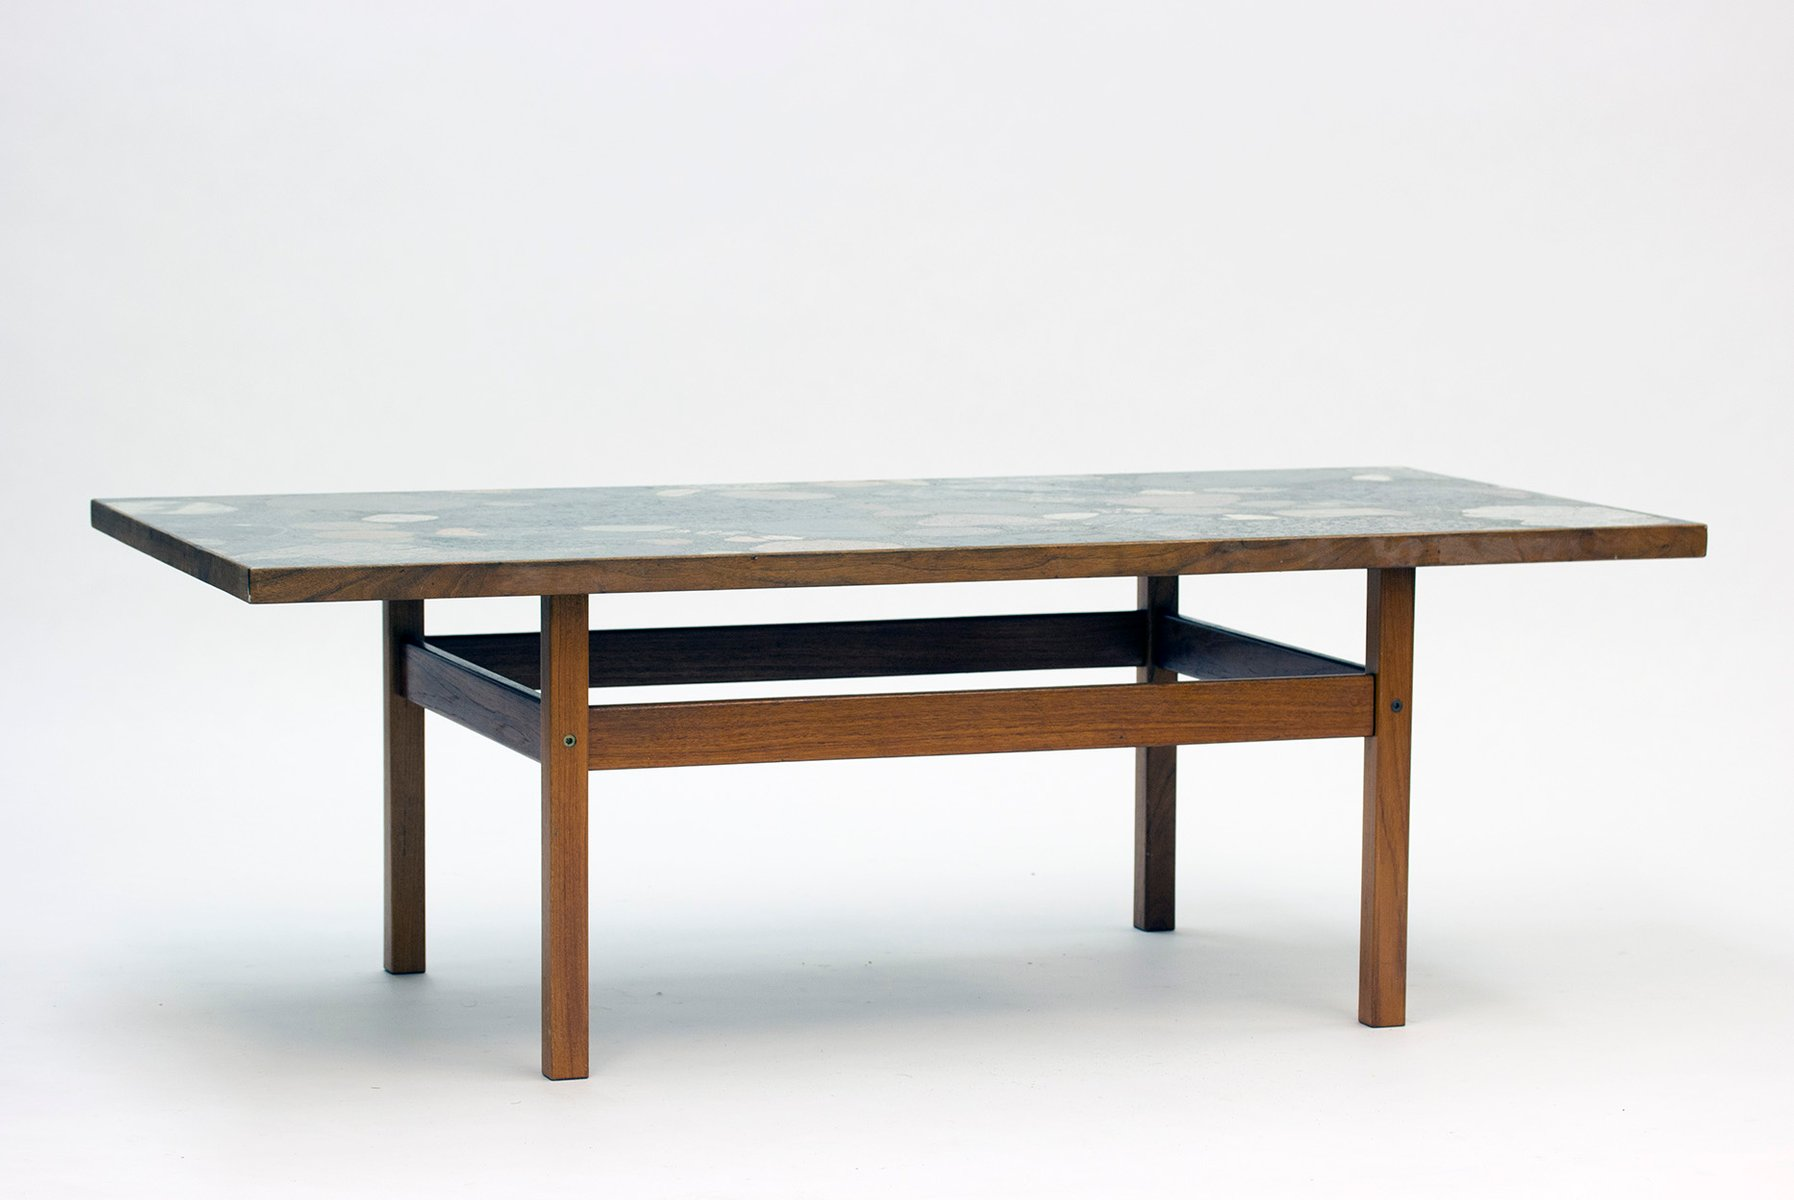 Norwegian teak coffee table with stone top by erling viksj 1970s for sale at pamono Stone top coffee table